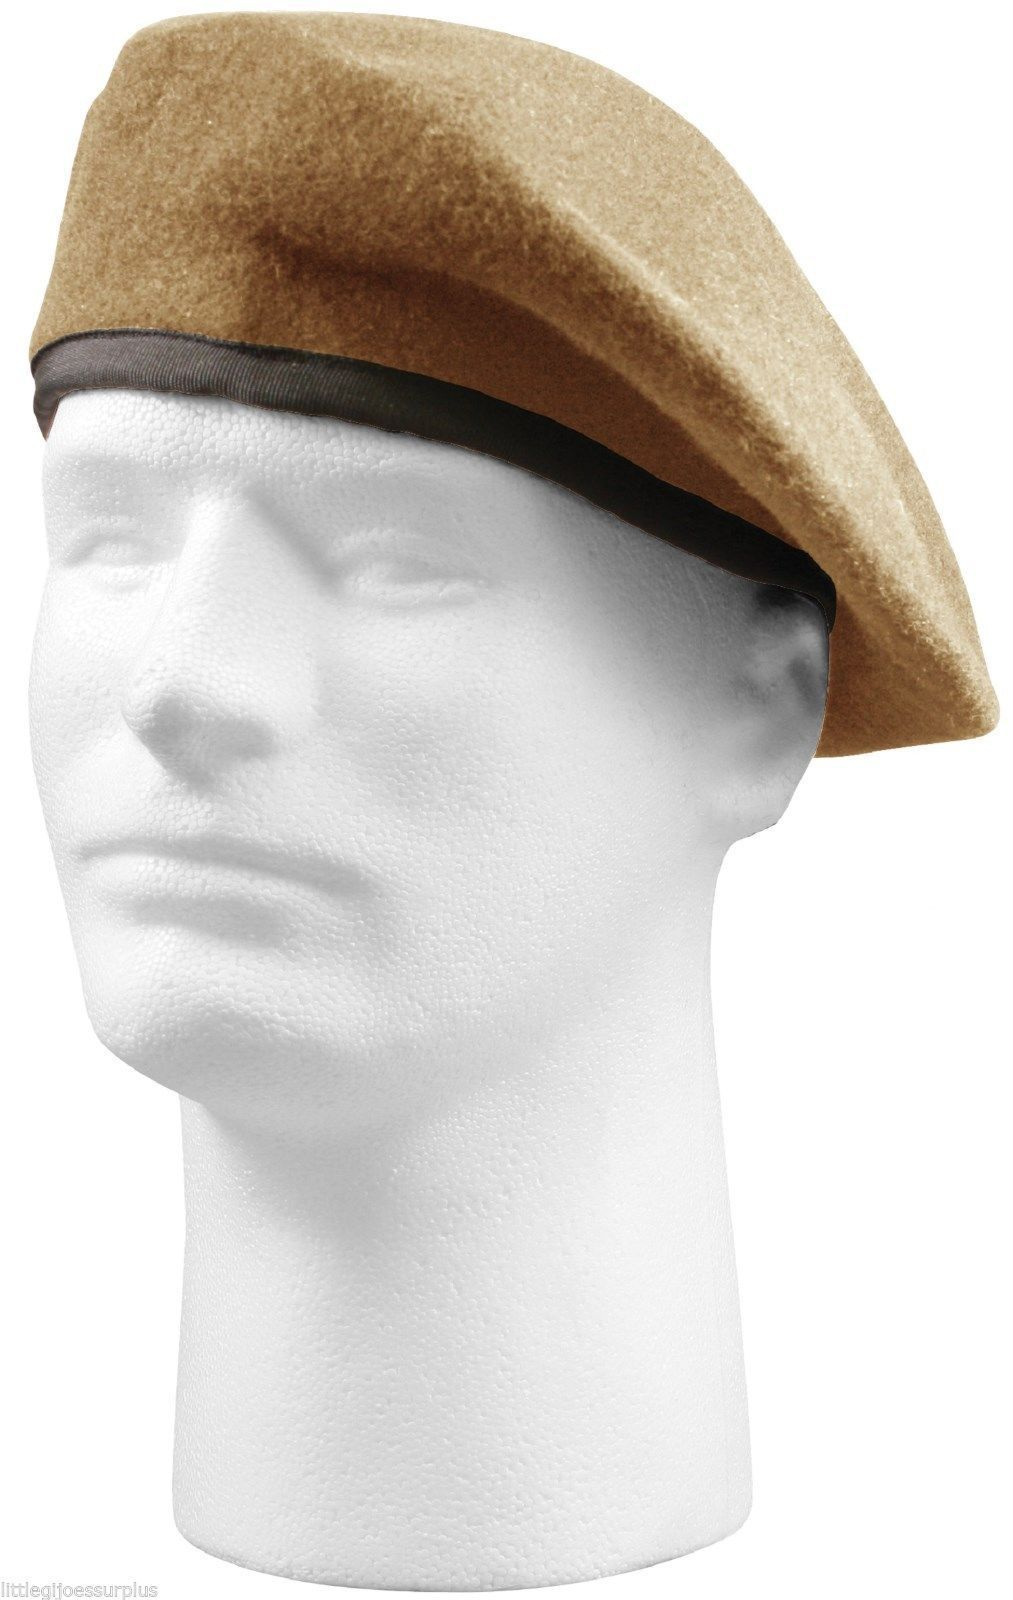 Inspection Ready Wool Tan Beret Without Flash - Military French Cap Beanie c3d18fb7b3b